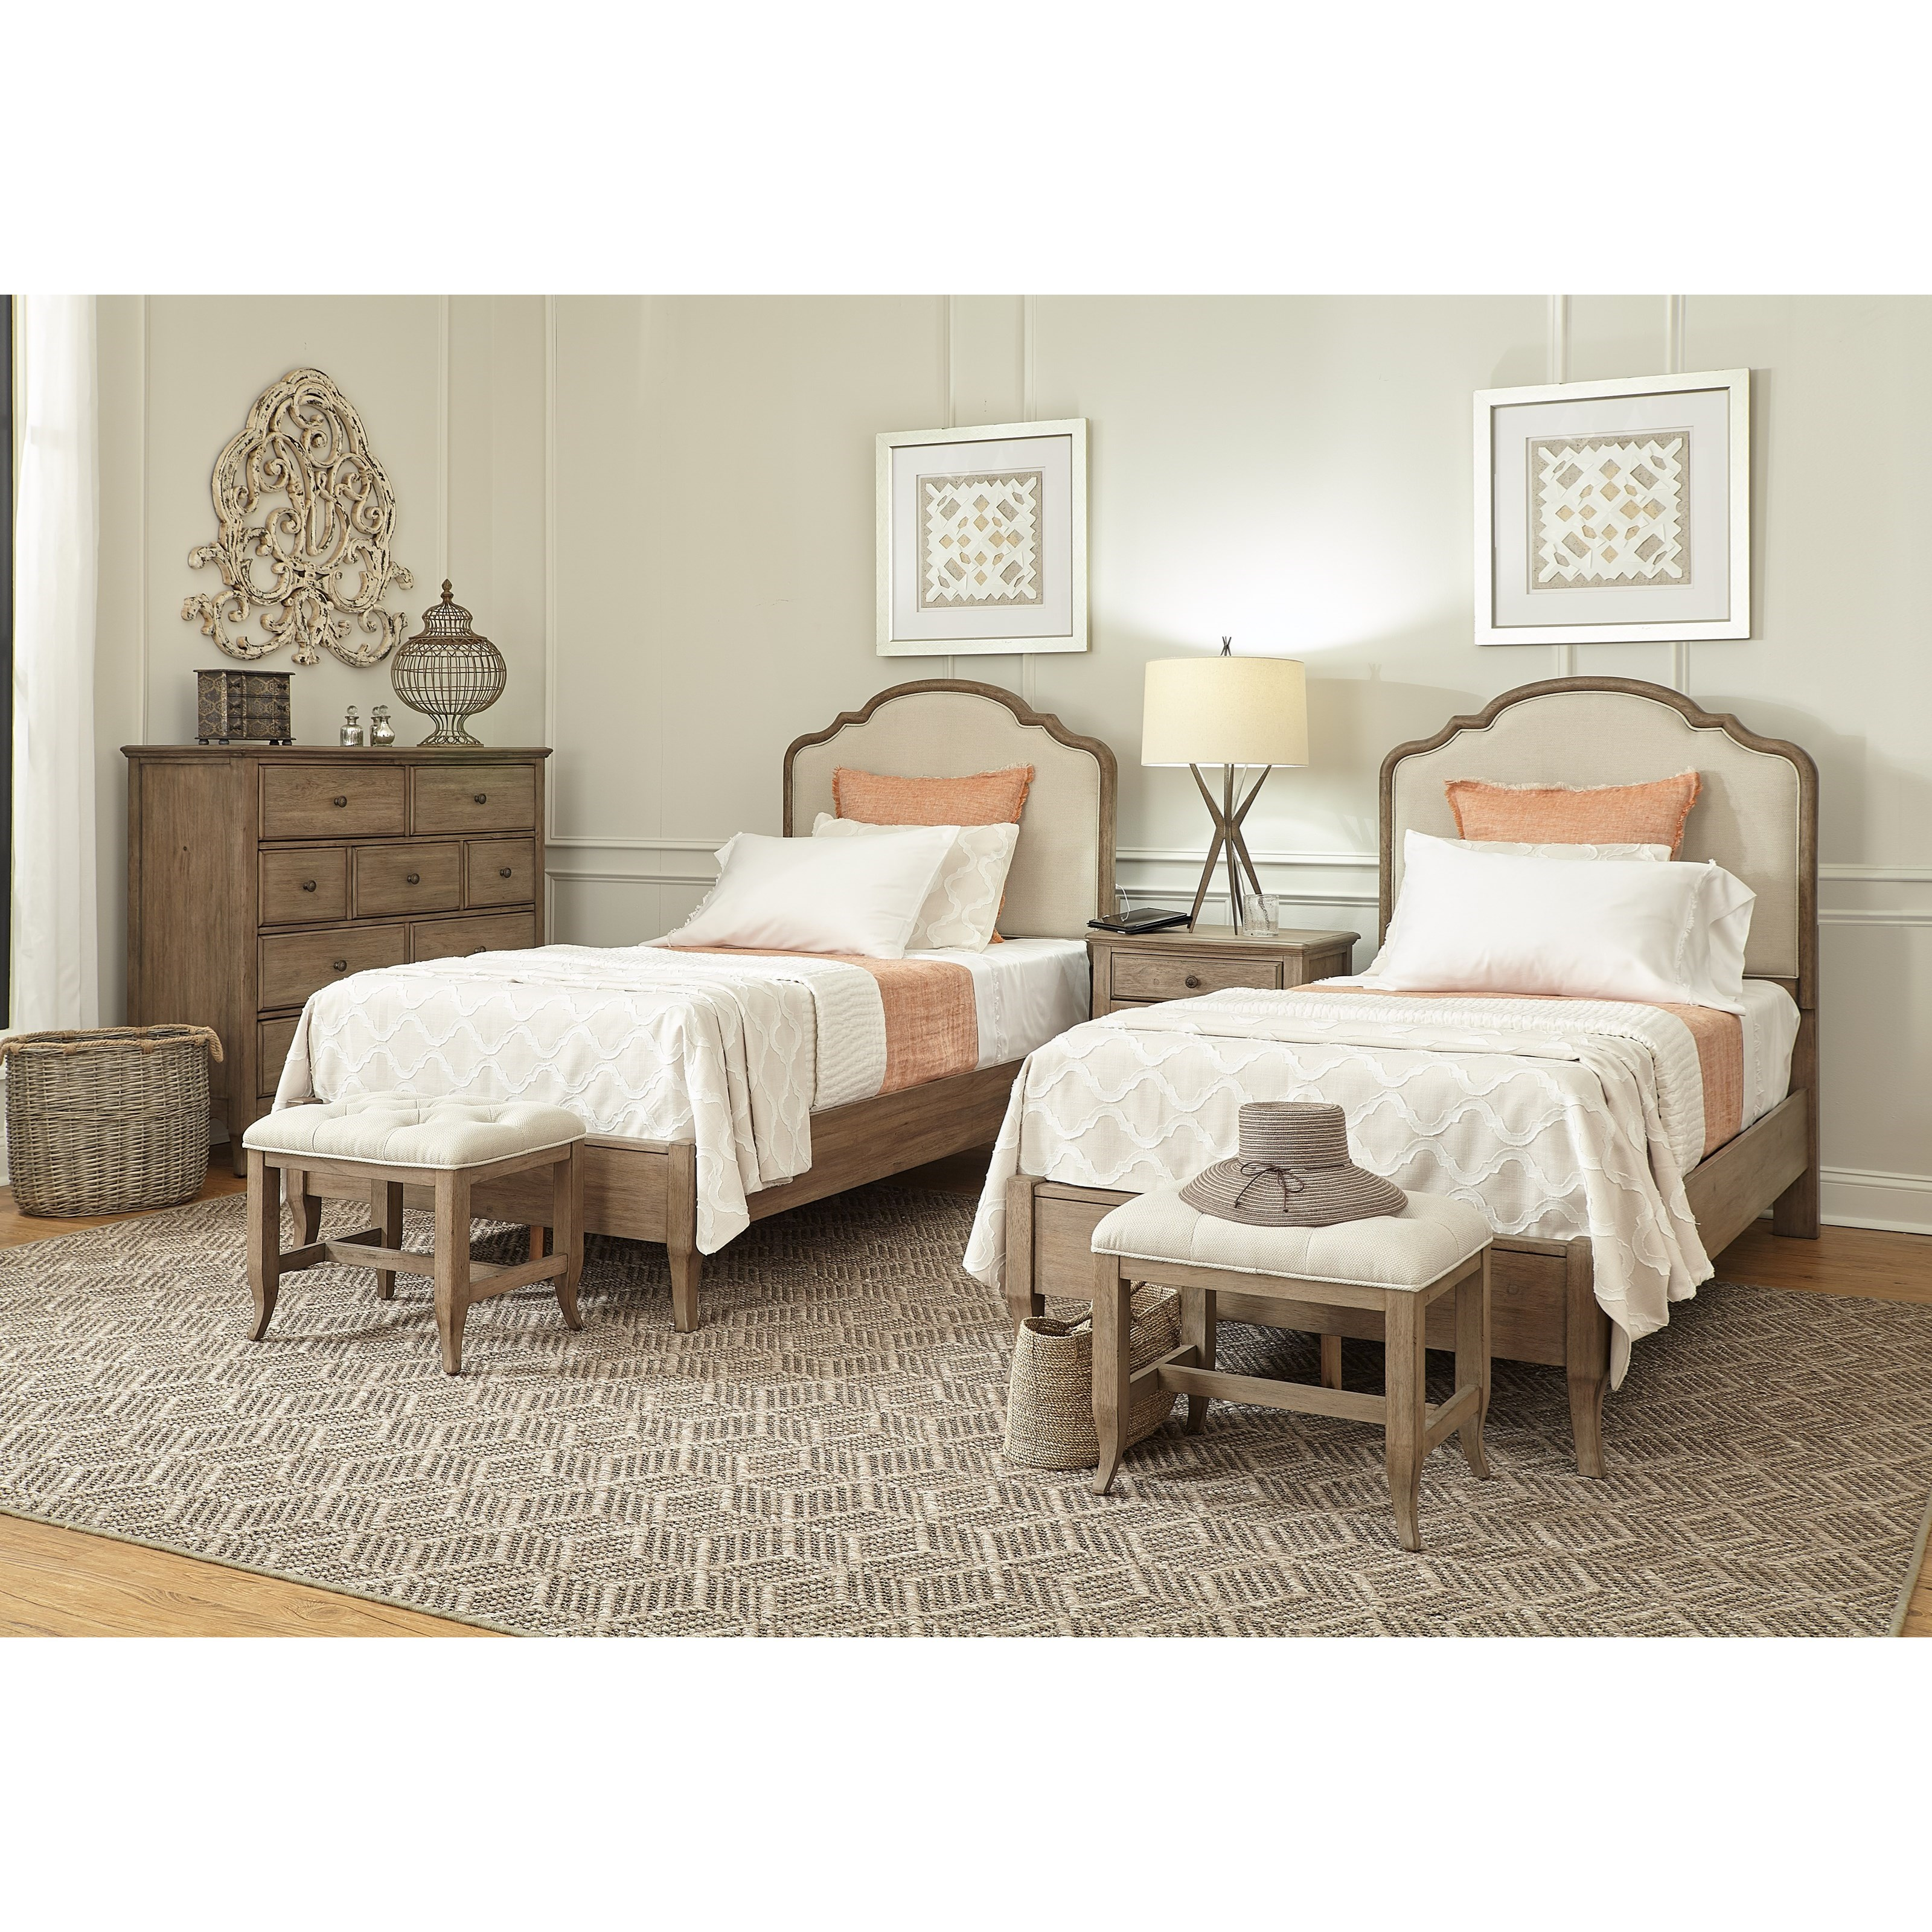 Provence Twin Bedroom Group by Aspenhome at Stoney Creek Furniture